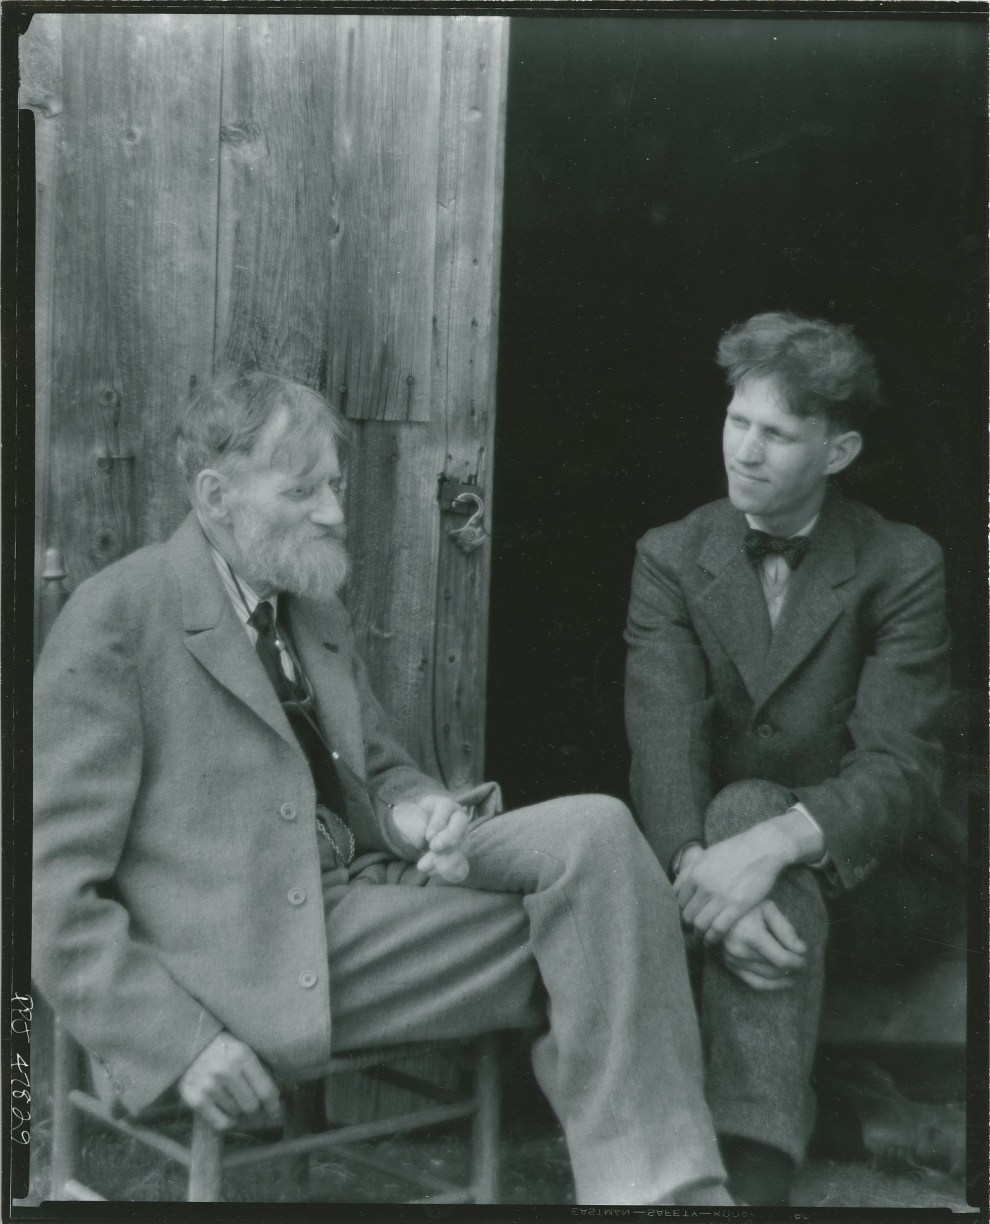 Fig. 32. Emil Carlsen and son Dines, c.1930